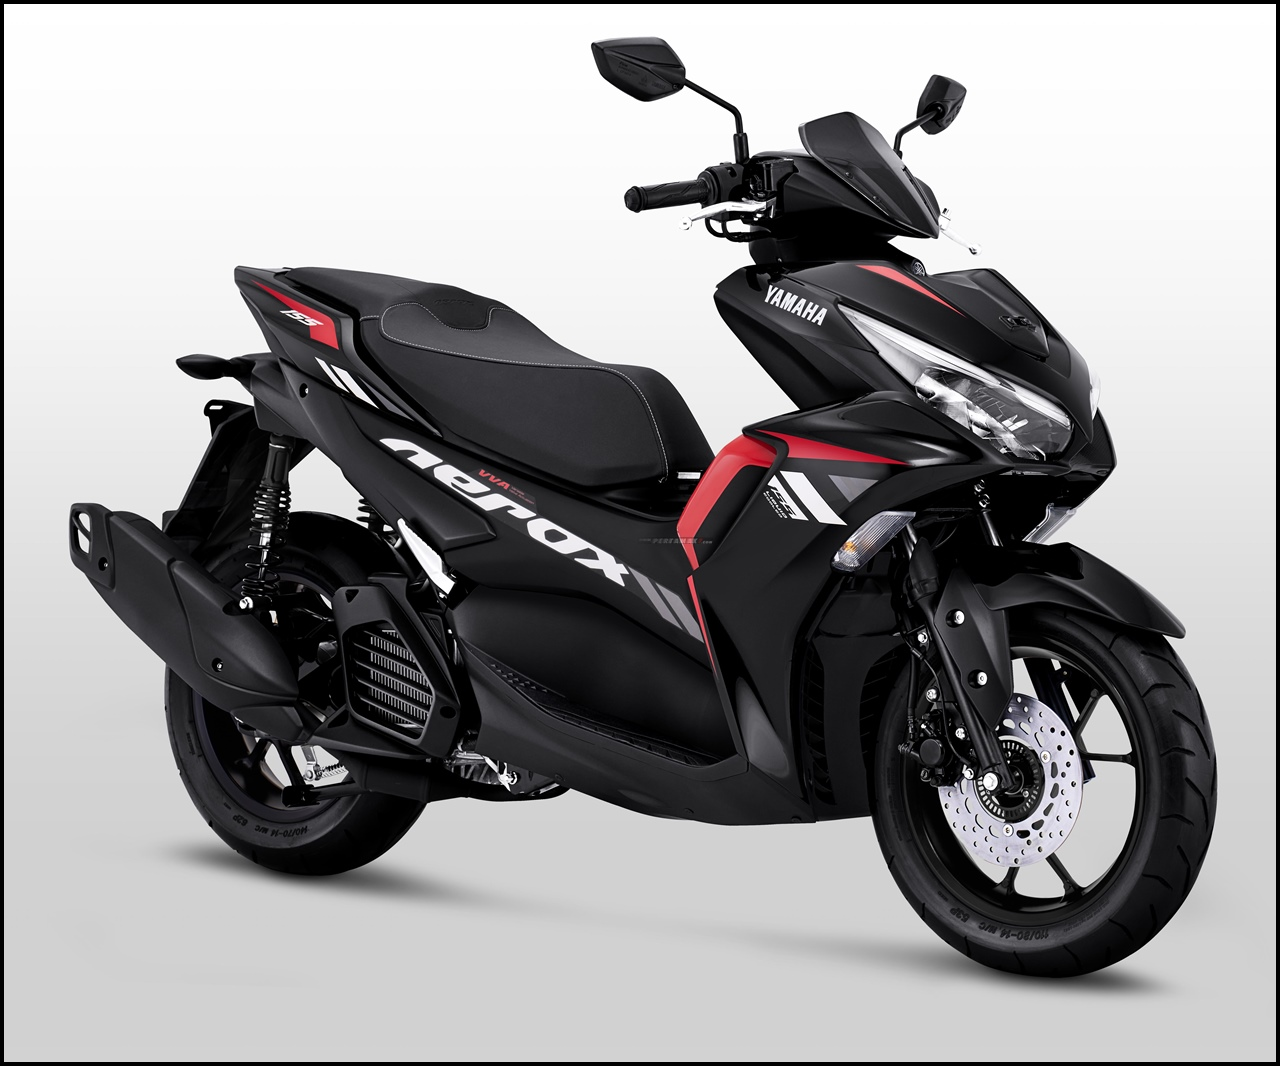 Pilihan Warna Yamaha Aerox 155 Connected Non ABS